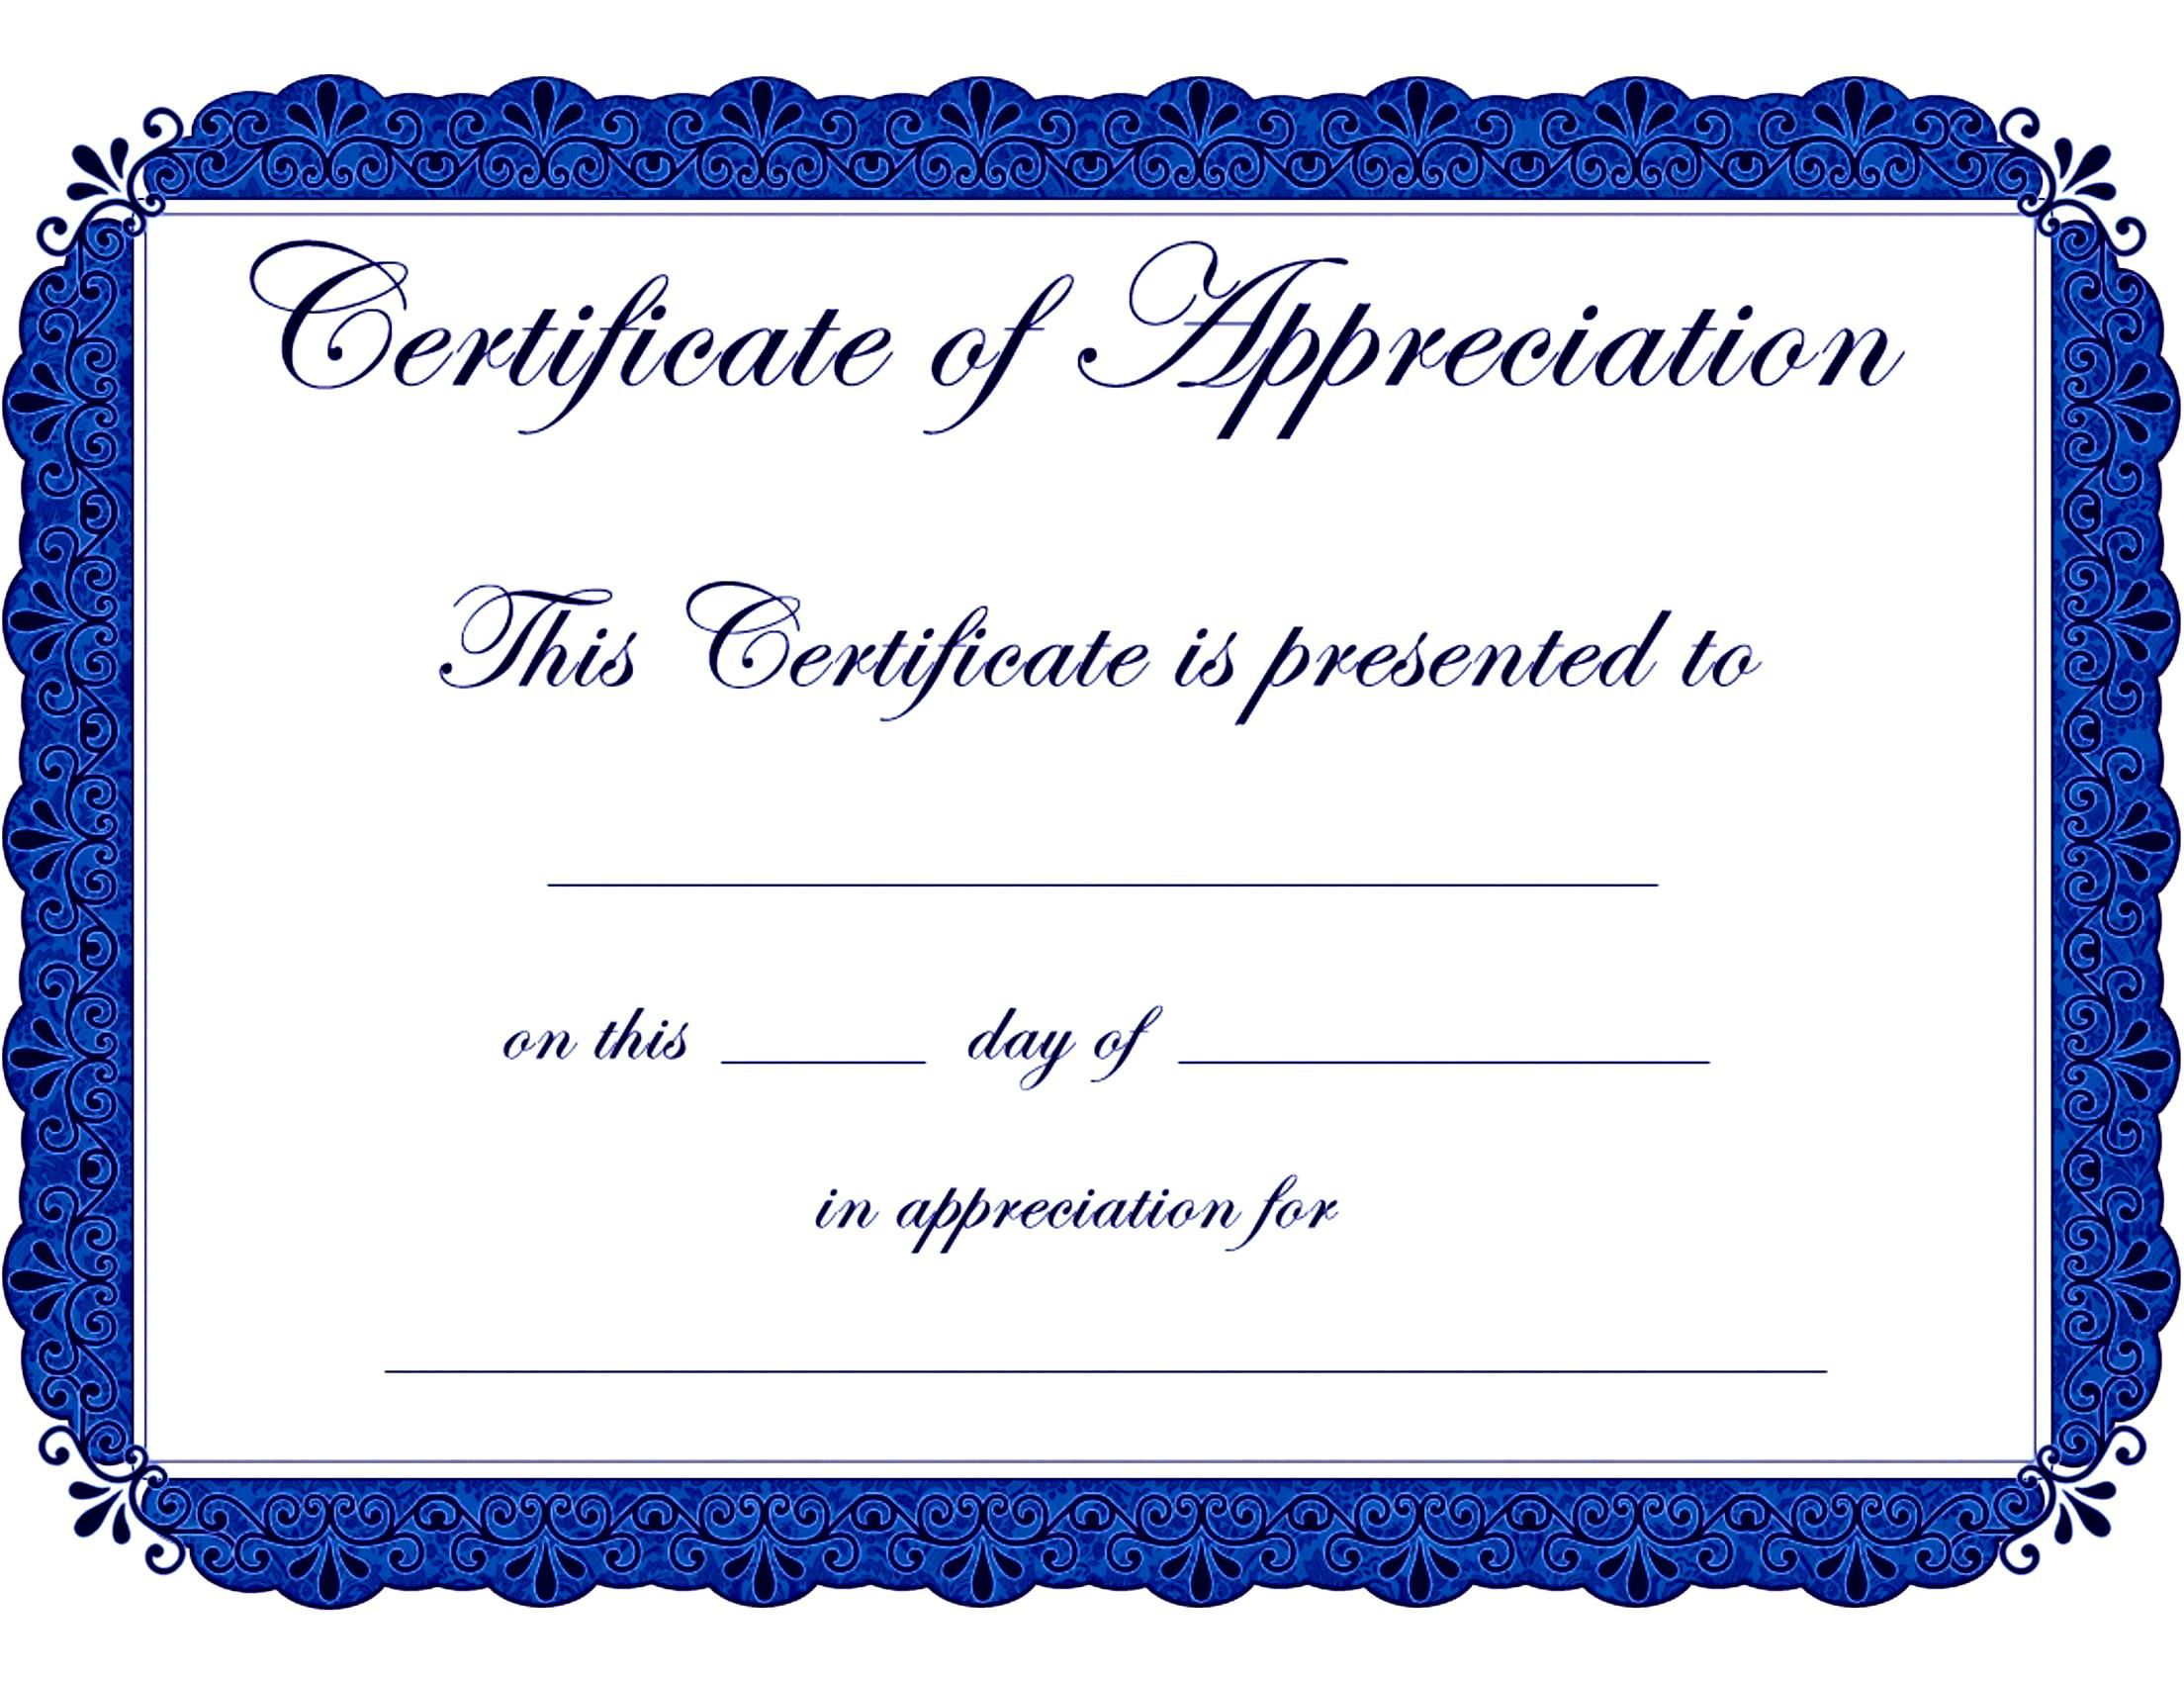 Appealing award template word for certificate of appreciation with free certificate of completion template xflitez Gallery